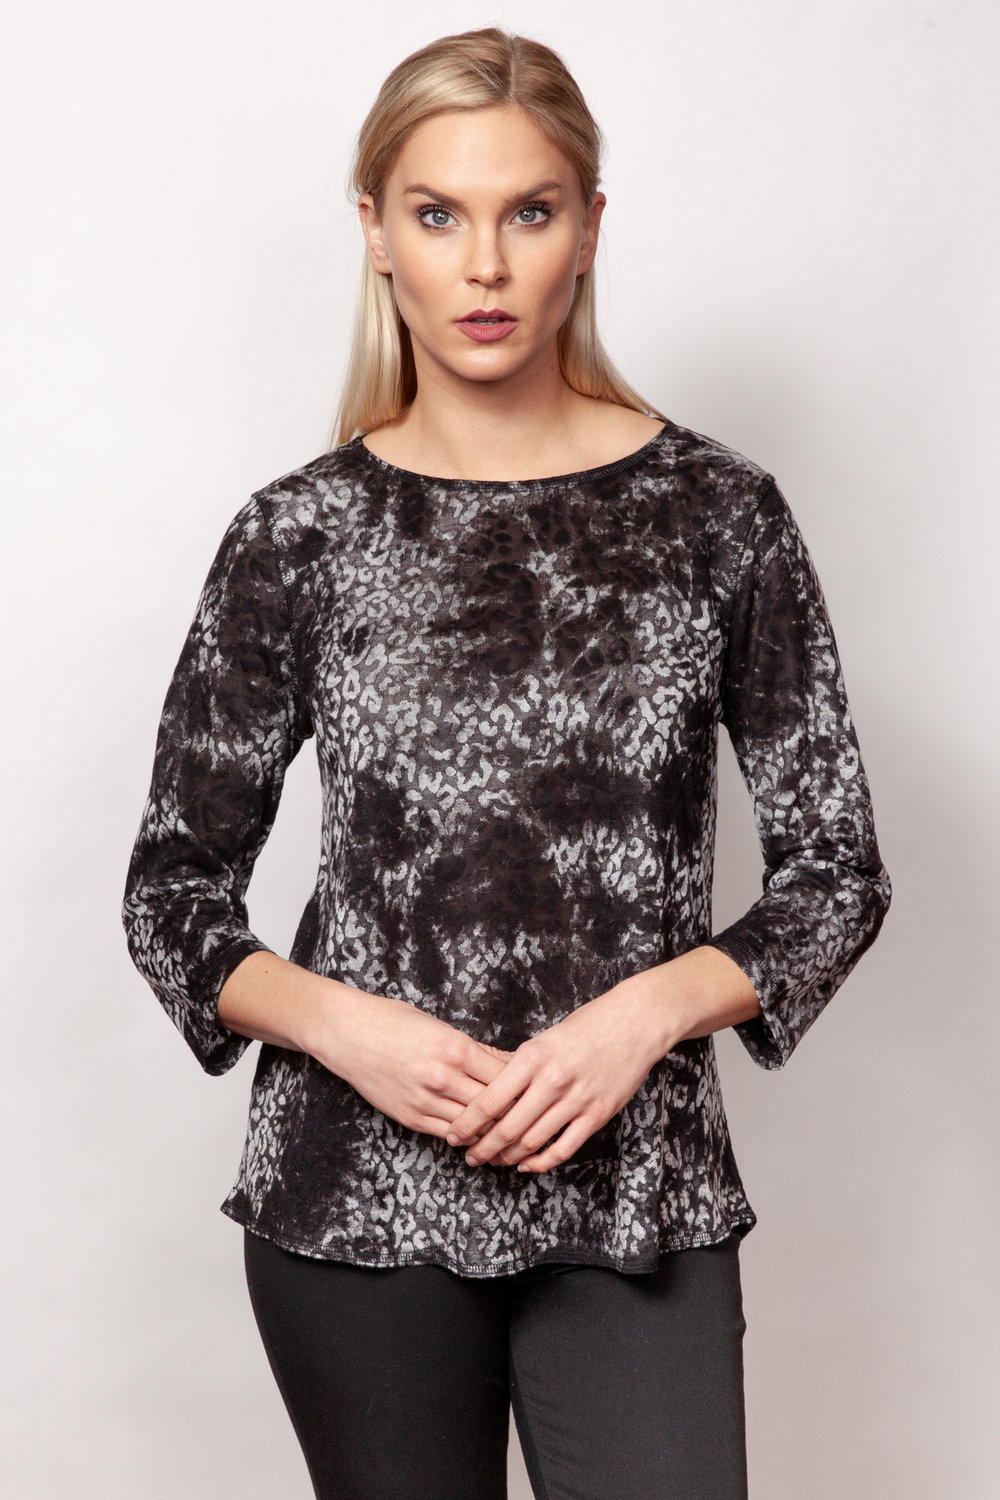 Copy of Style # 94375-19, p 5 <br/>Animal Jacquard <br/>Colors: Charcoal + 1 other